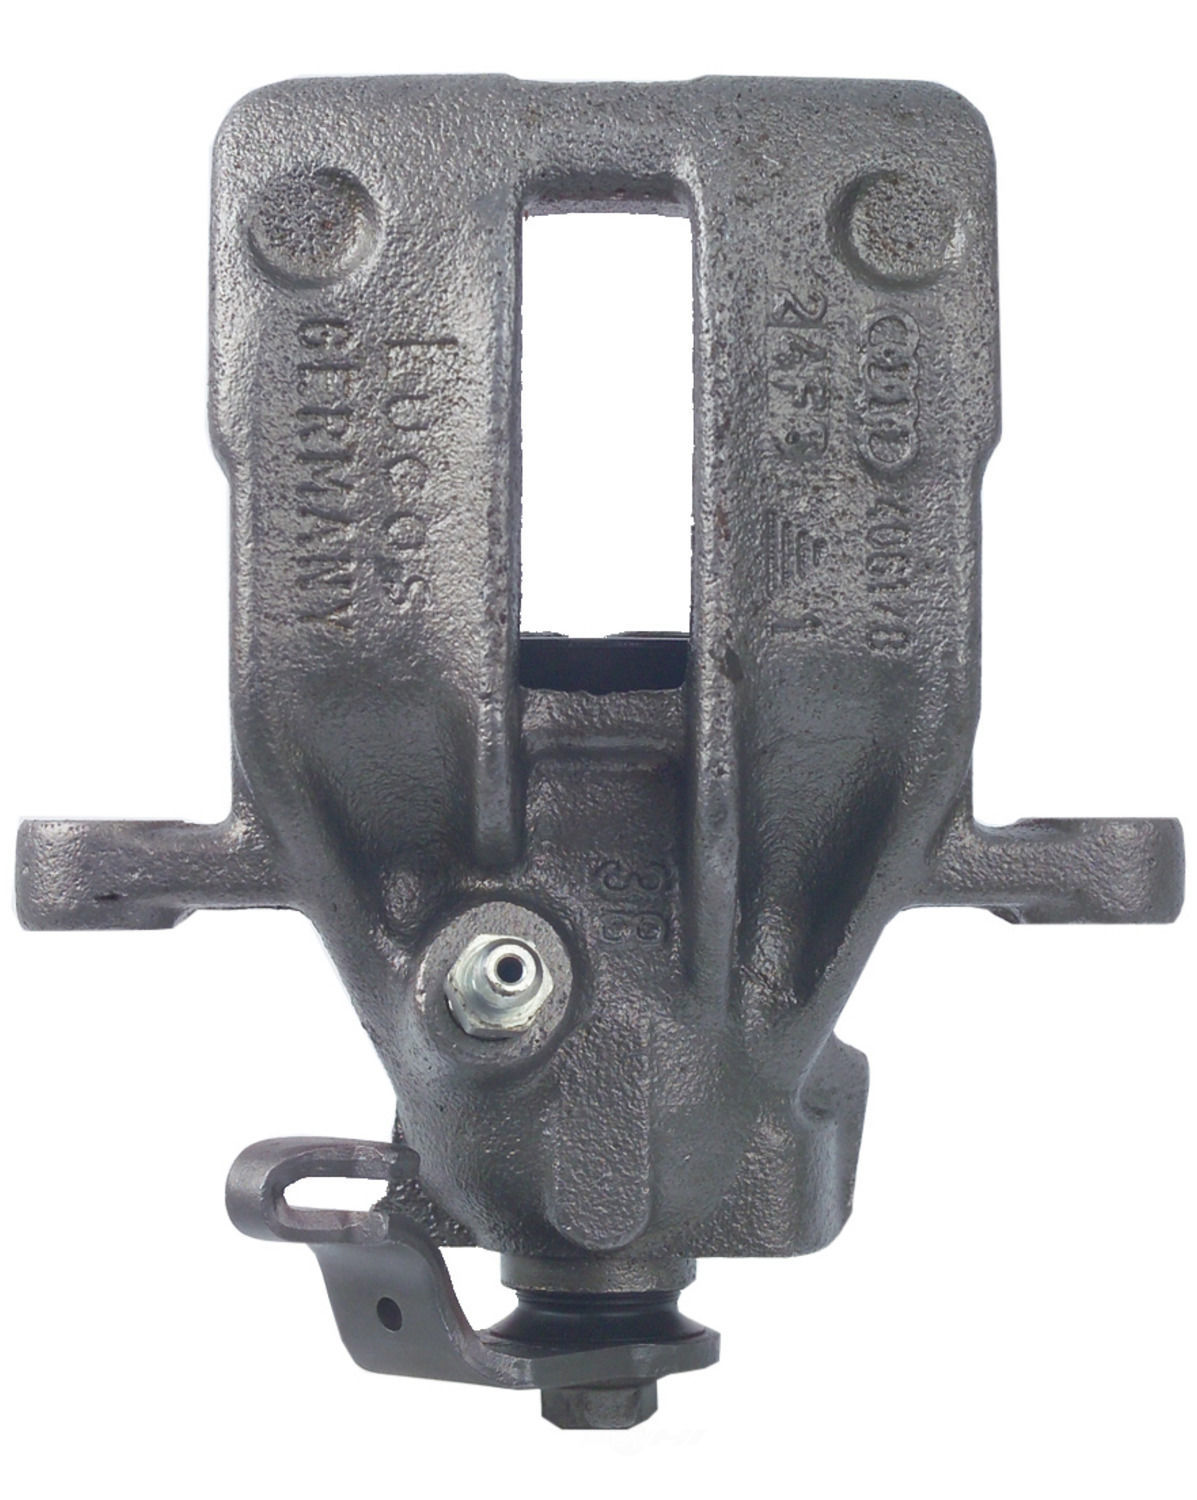 CARDONE/A-1 CARDONE - Remanufactured Friction Choice Caliper (Rear Right) - A1C 19-1980